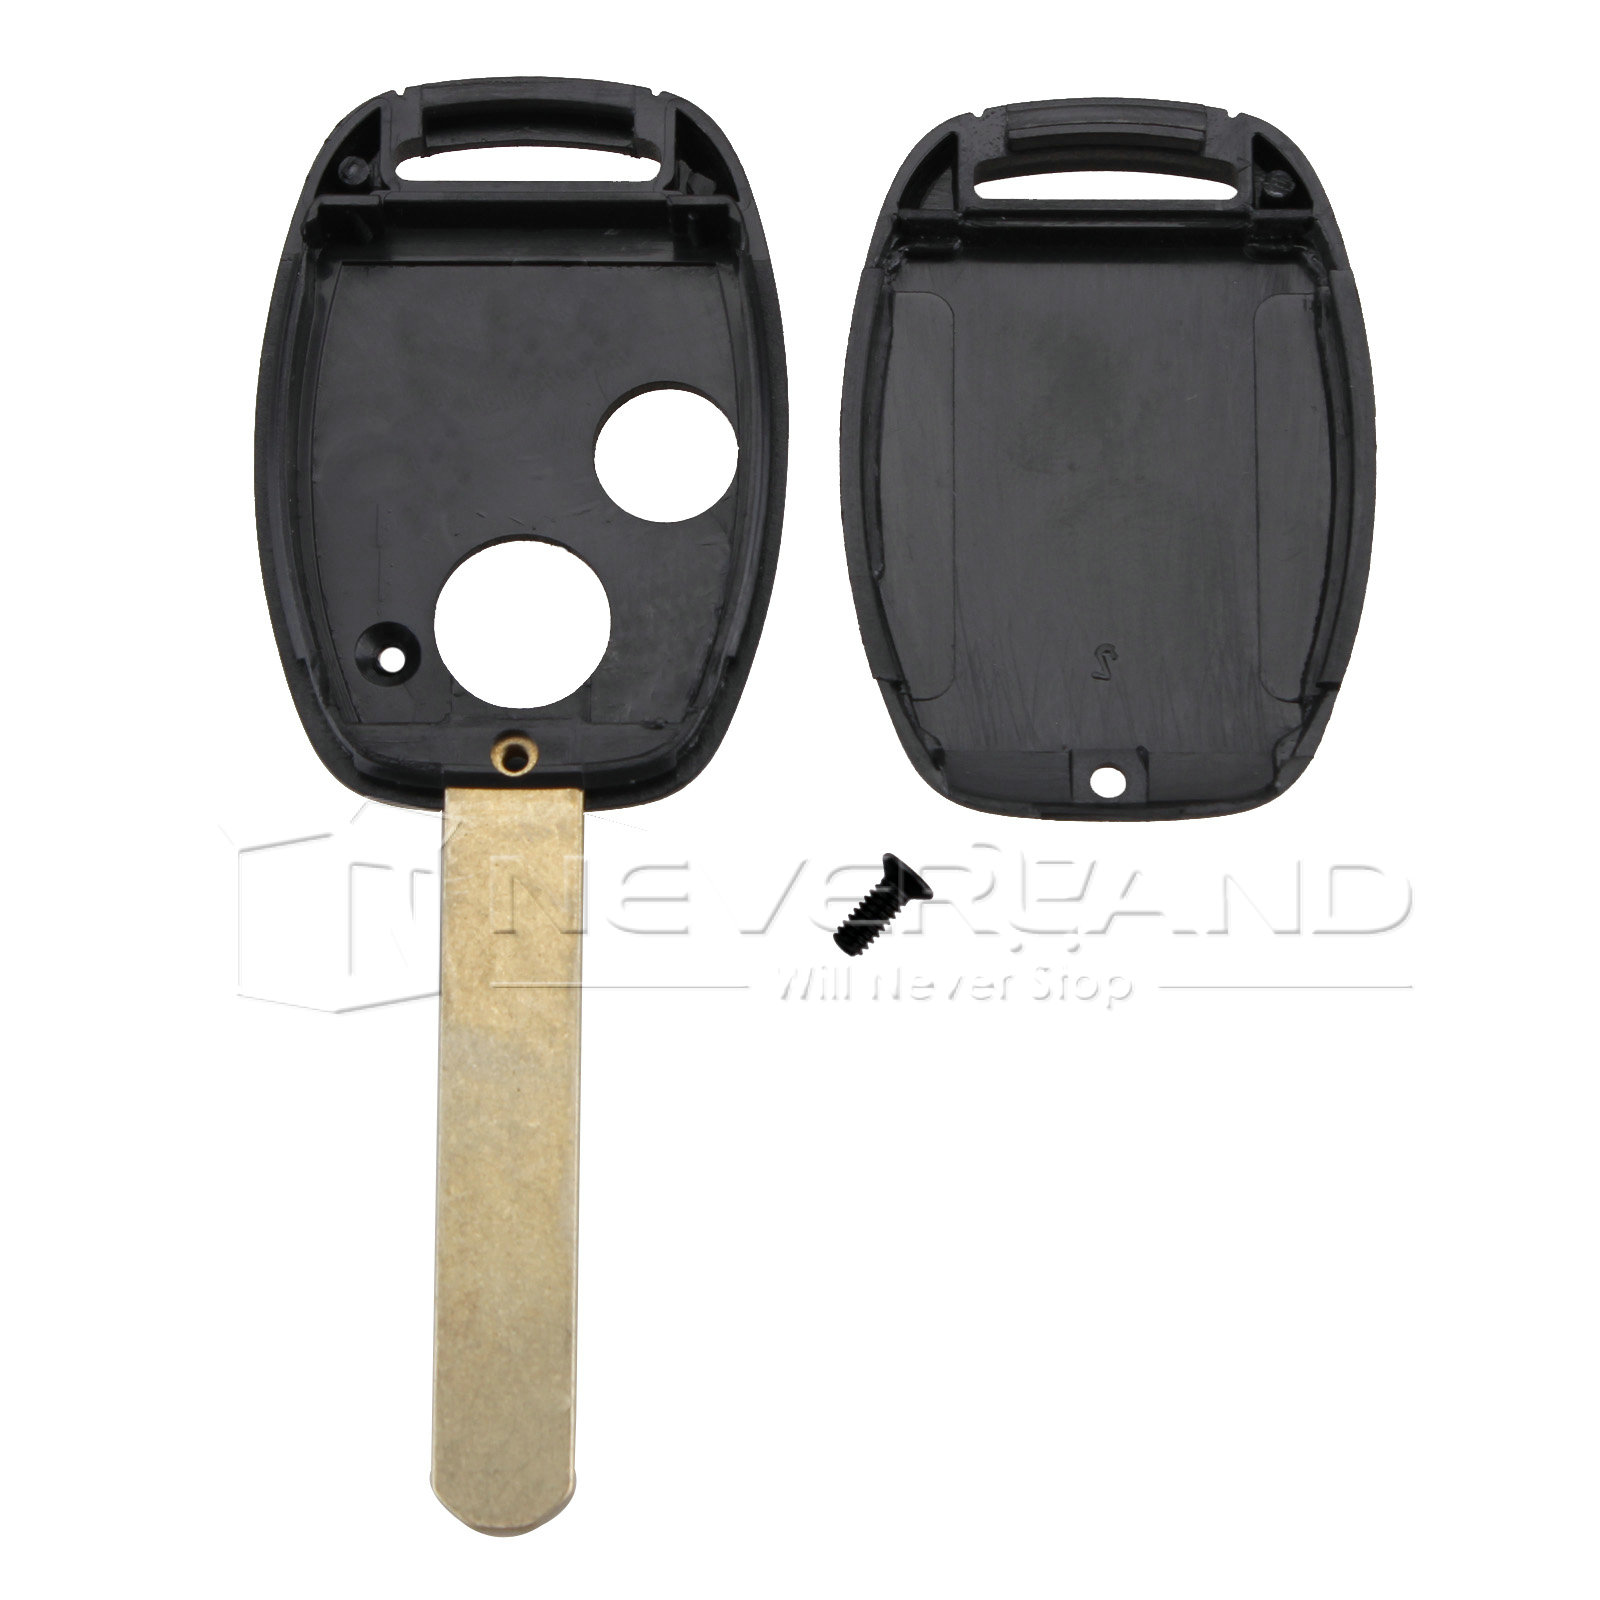 Replacement Keyless Entry Remote Key Fob Shell Case For